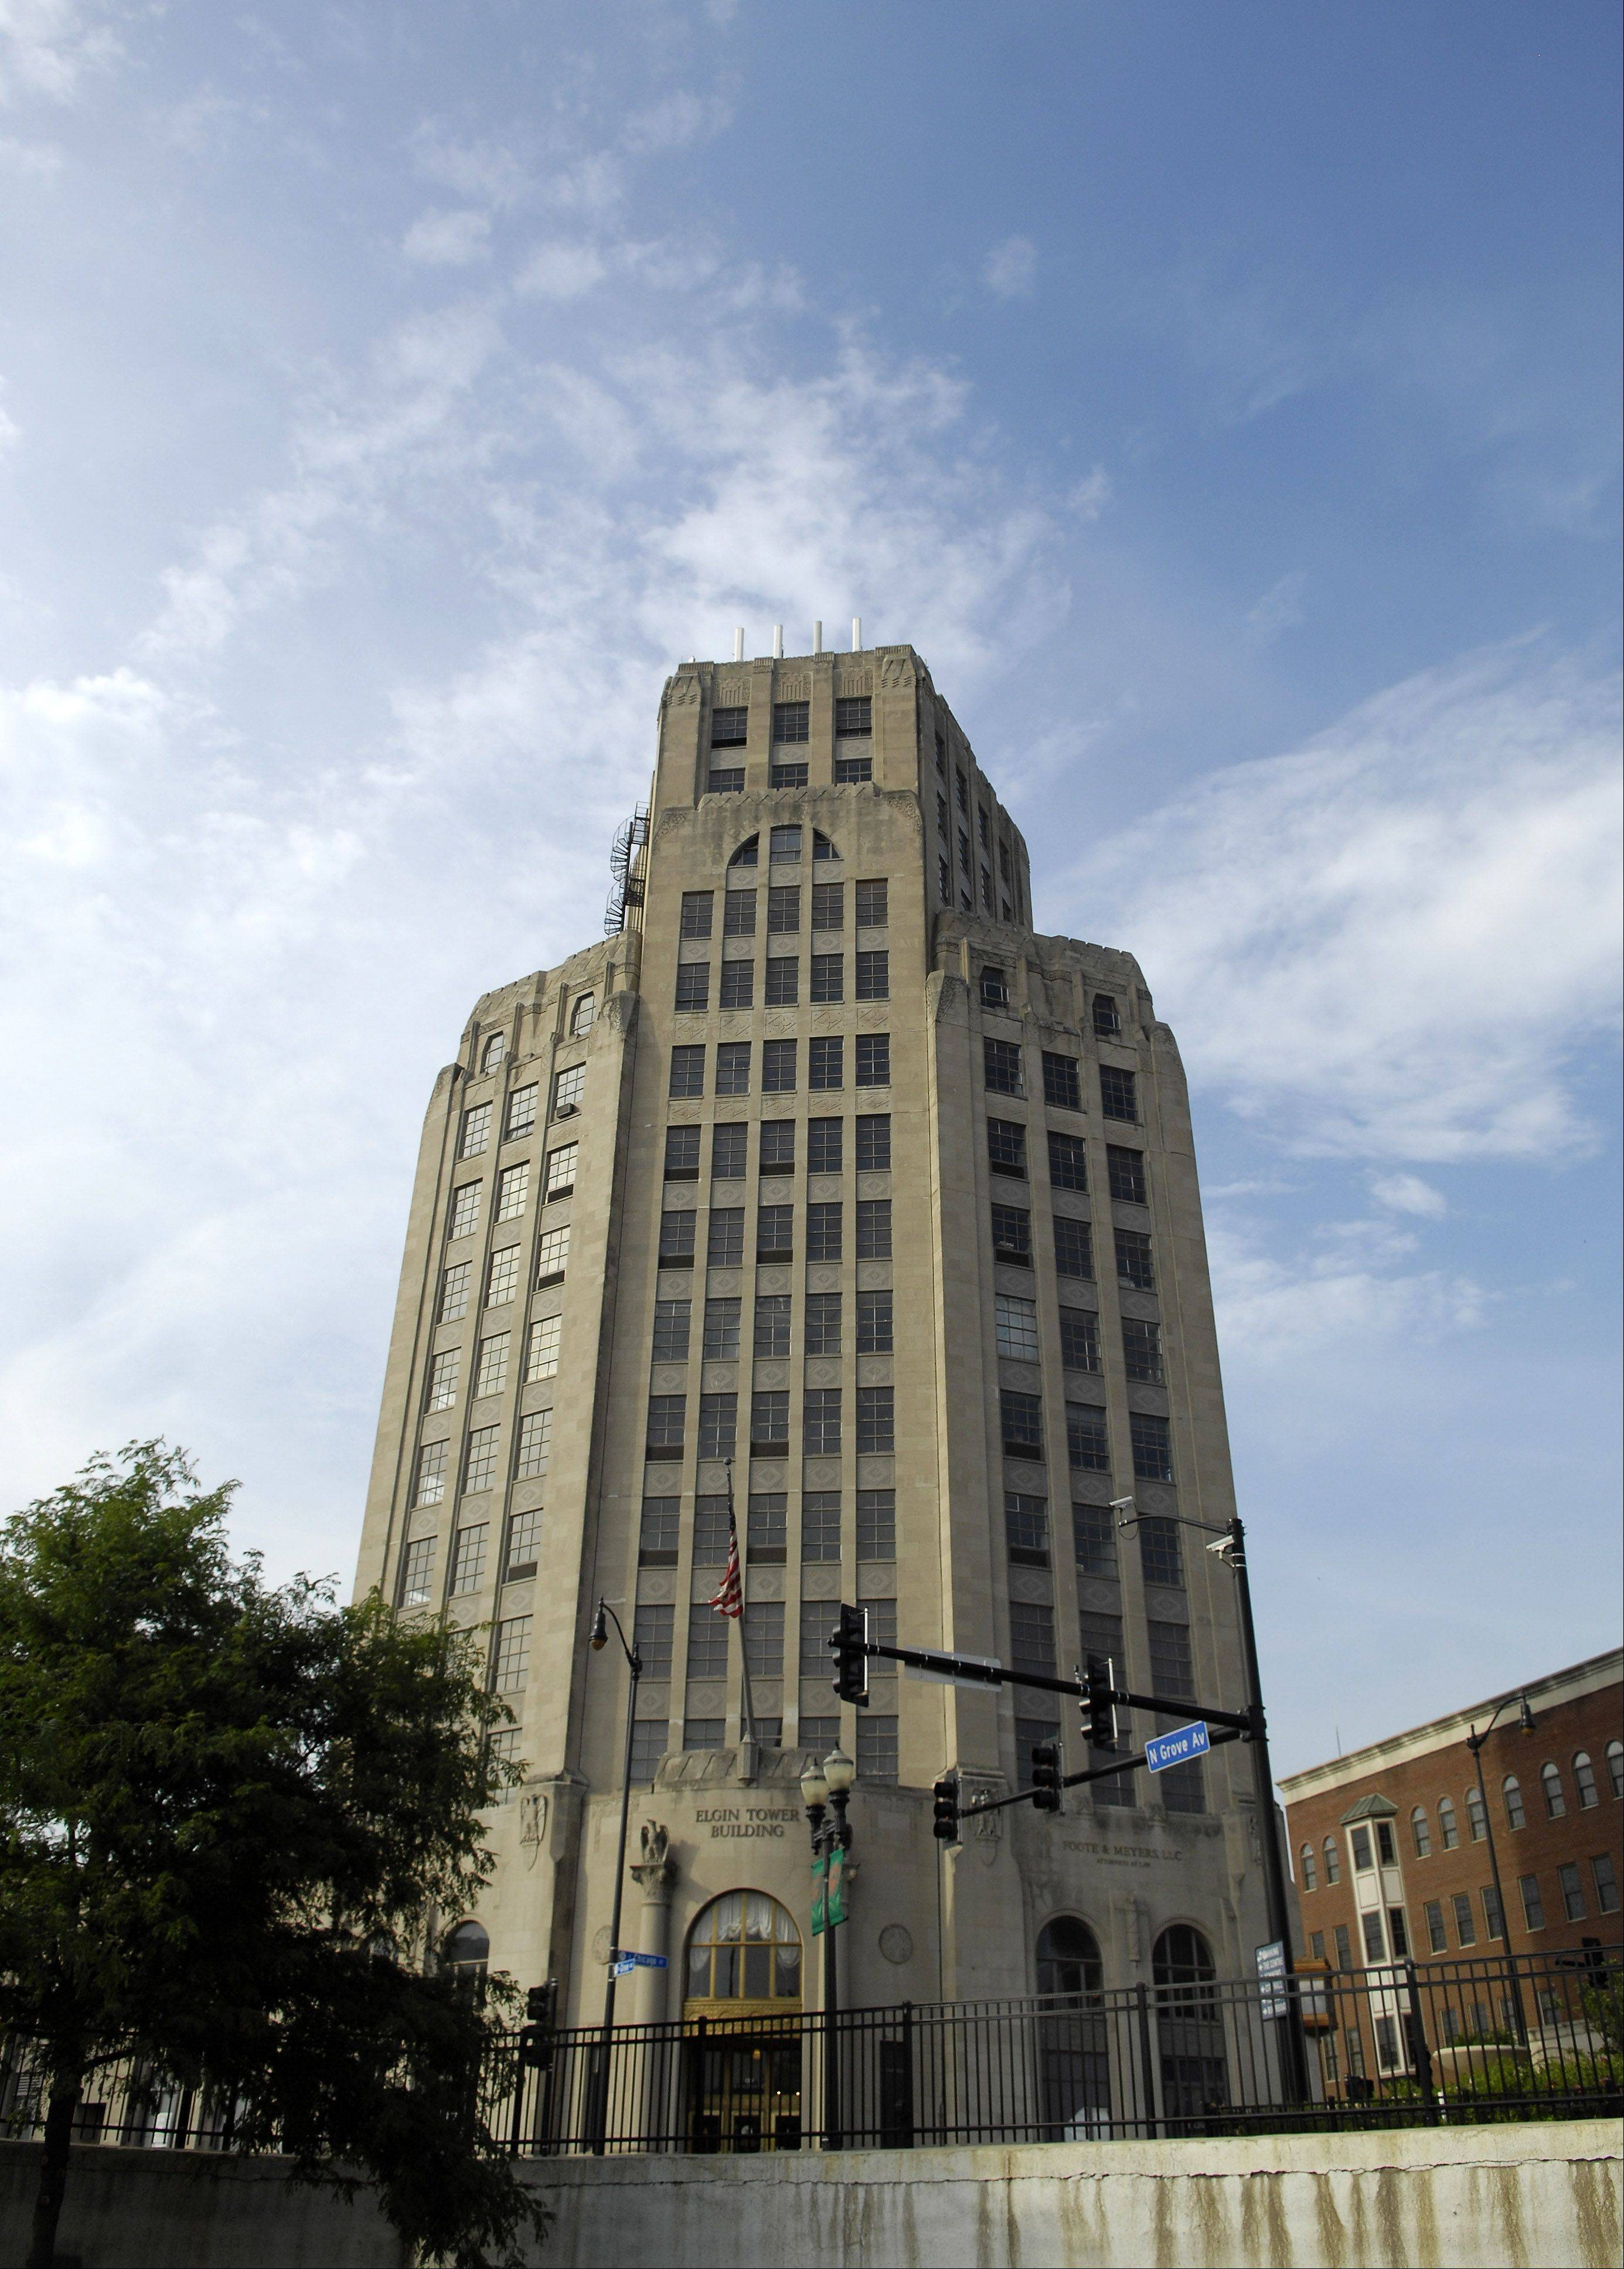 DAILY HERALD ARCHIVE/Rick West The Elgin Tower Building might be purchased by a Wisconsin-based company that would gut and restore it, city officials said.